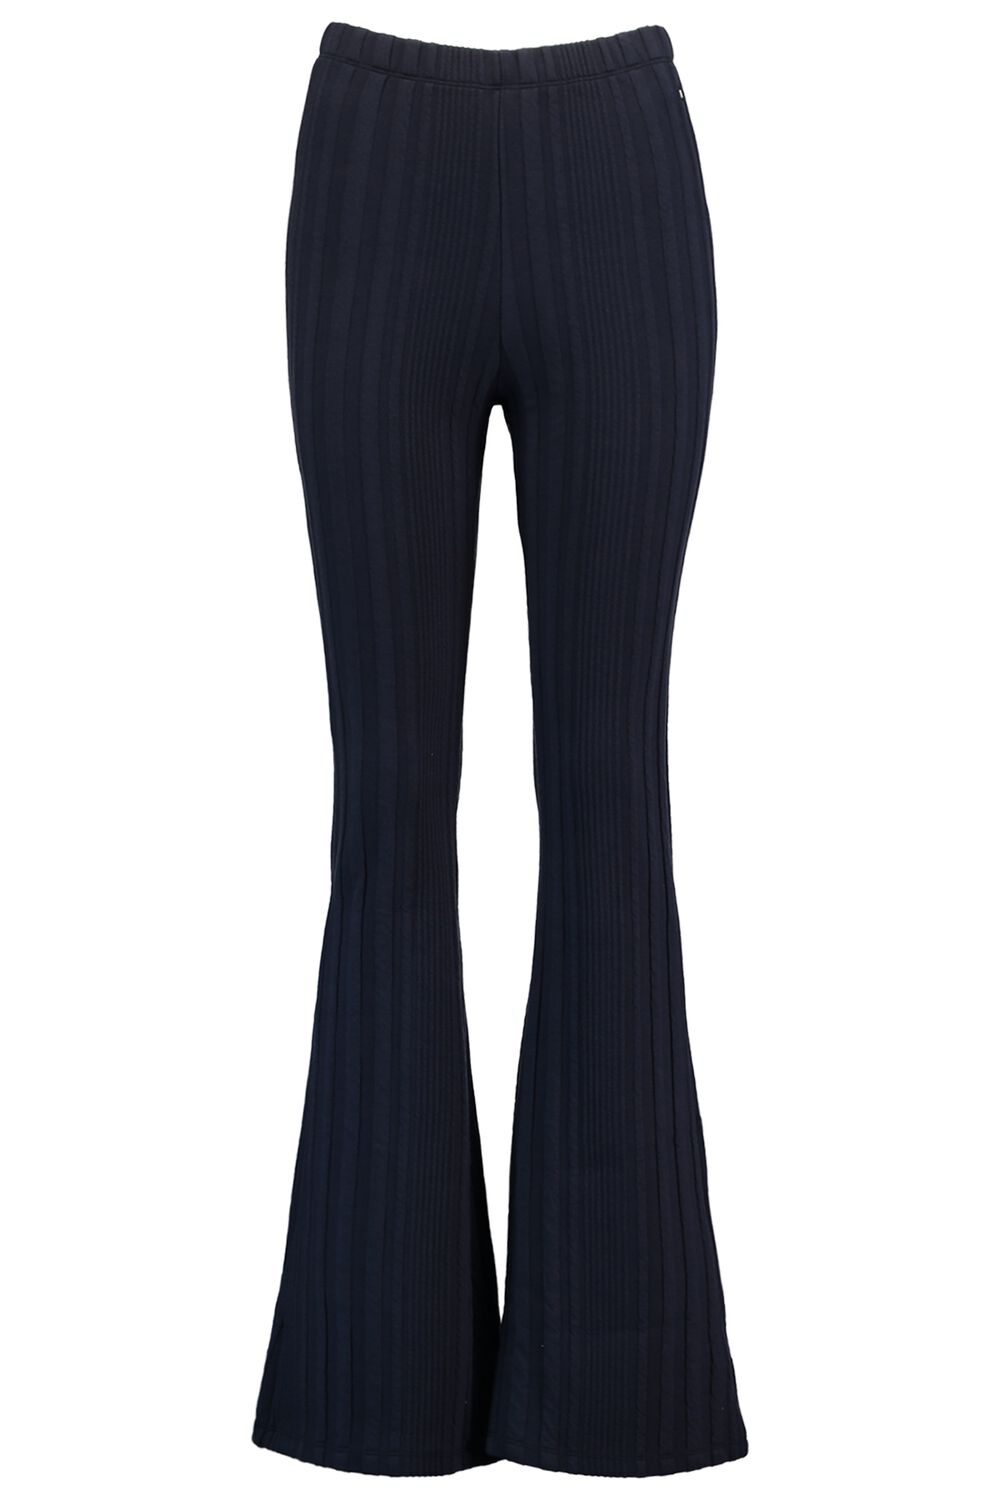 America Today Dames Legging Cassidy Blauw